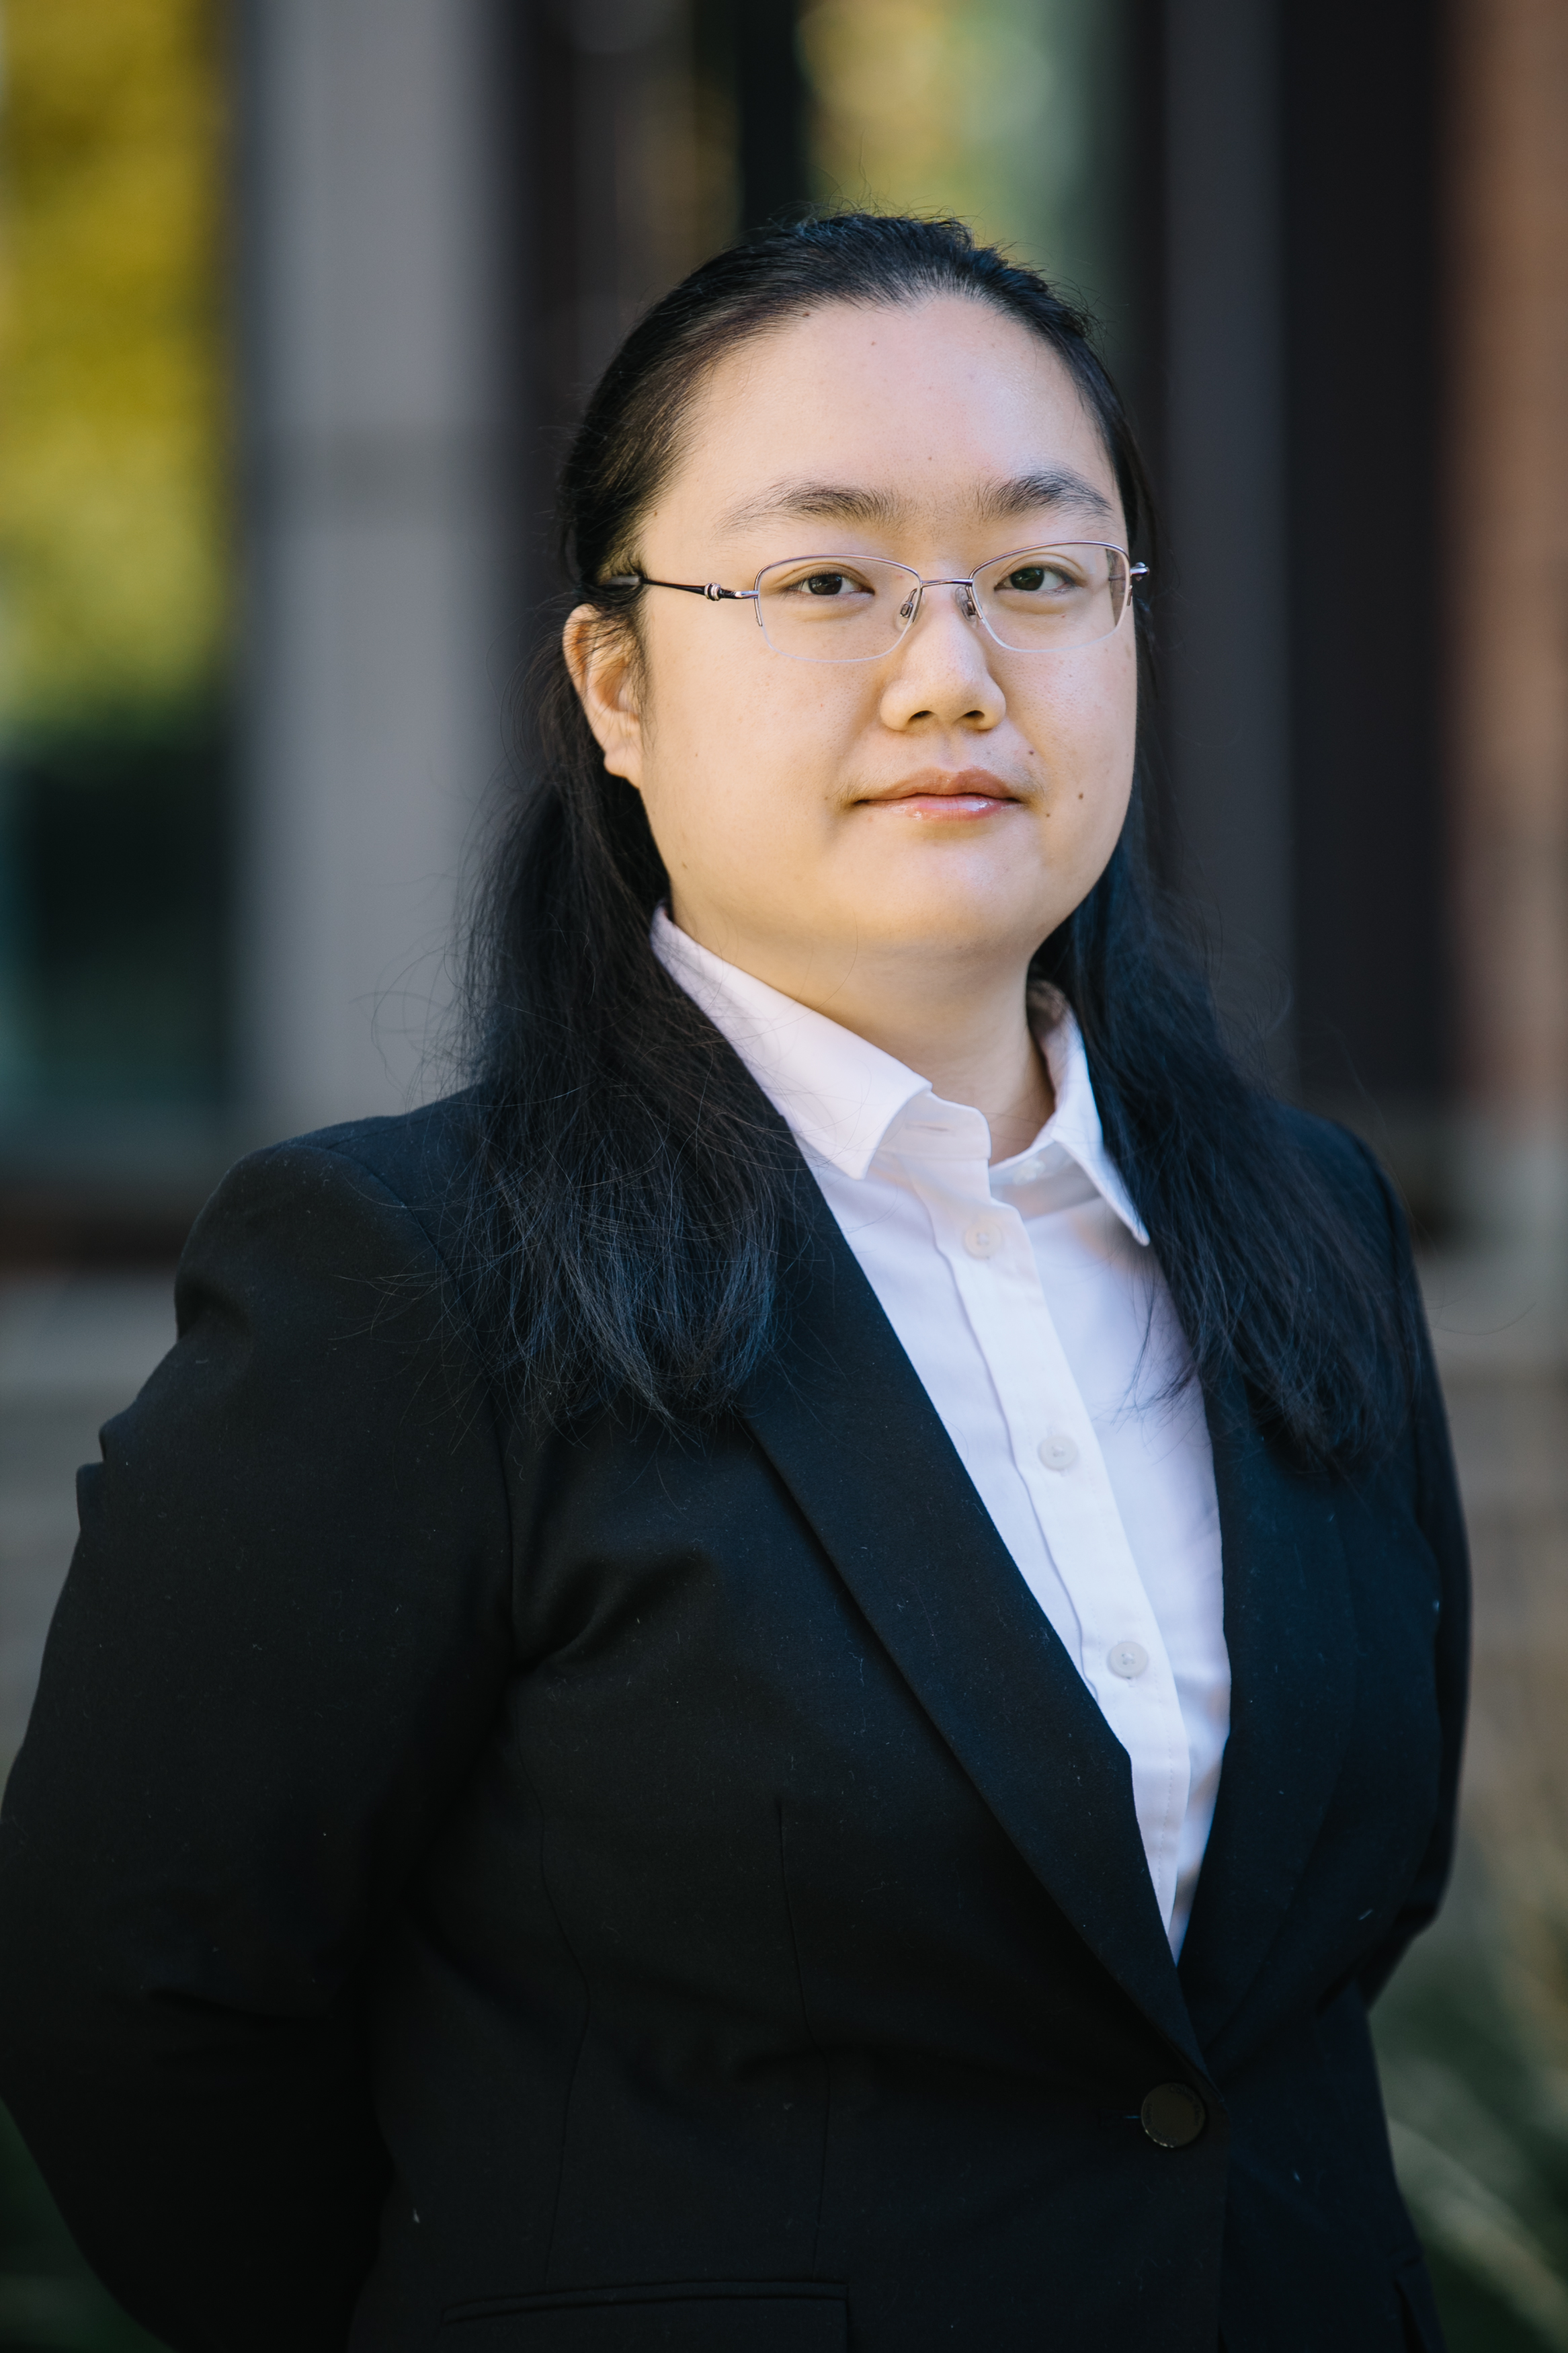 Photograph of Linda Wang